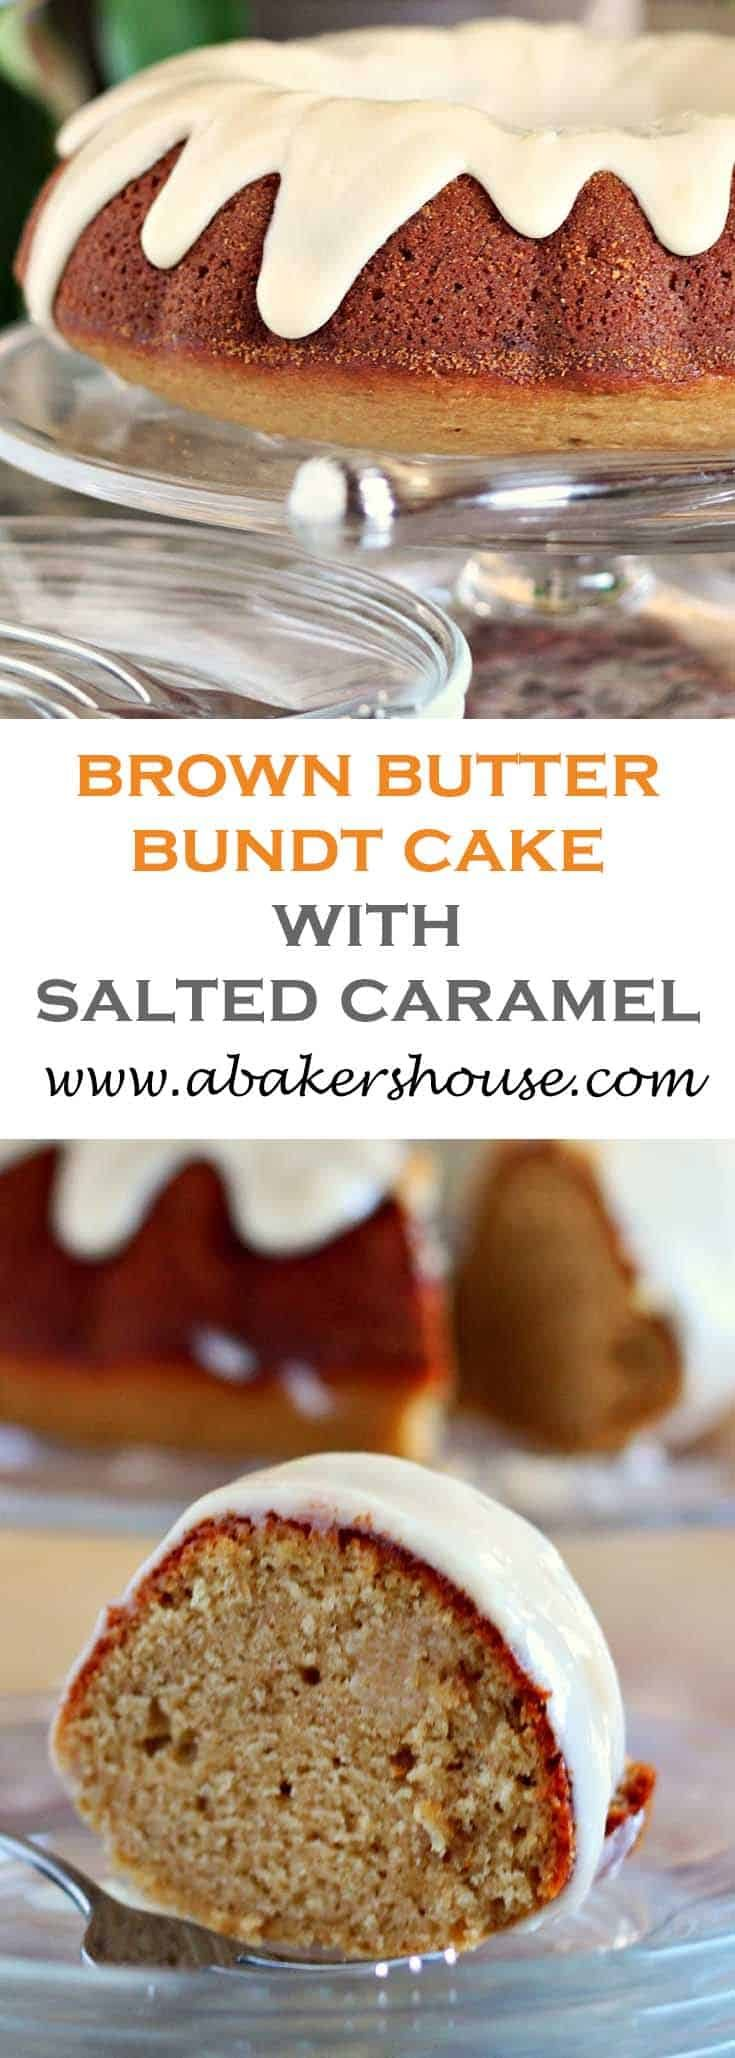 Make this Brown Butter Bundt cake with Salted Caramel icing. Serves a crowd and is ready for a special occasion. #abakershouse #brownbutter #bundt #cakeRecipe